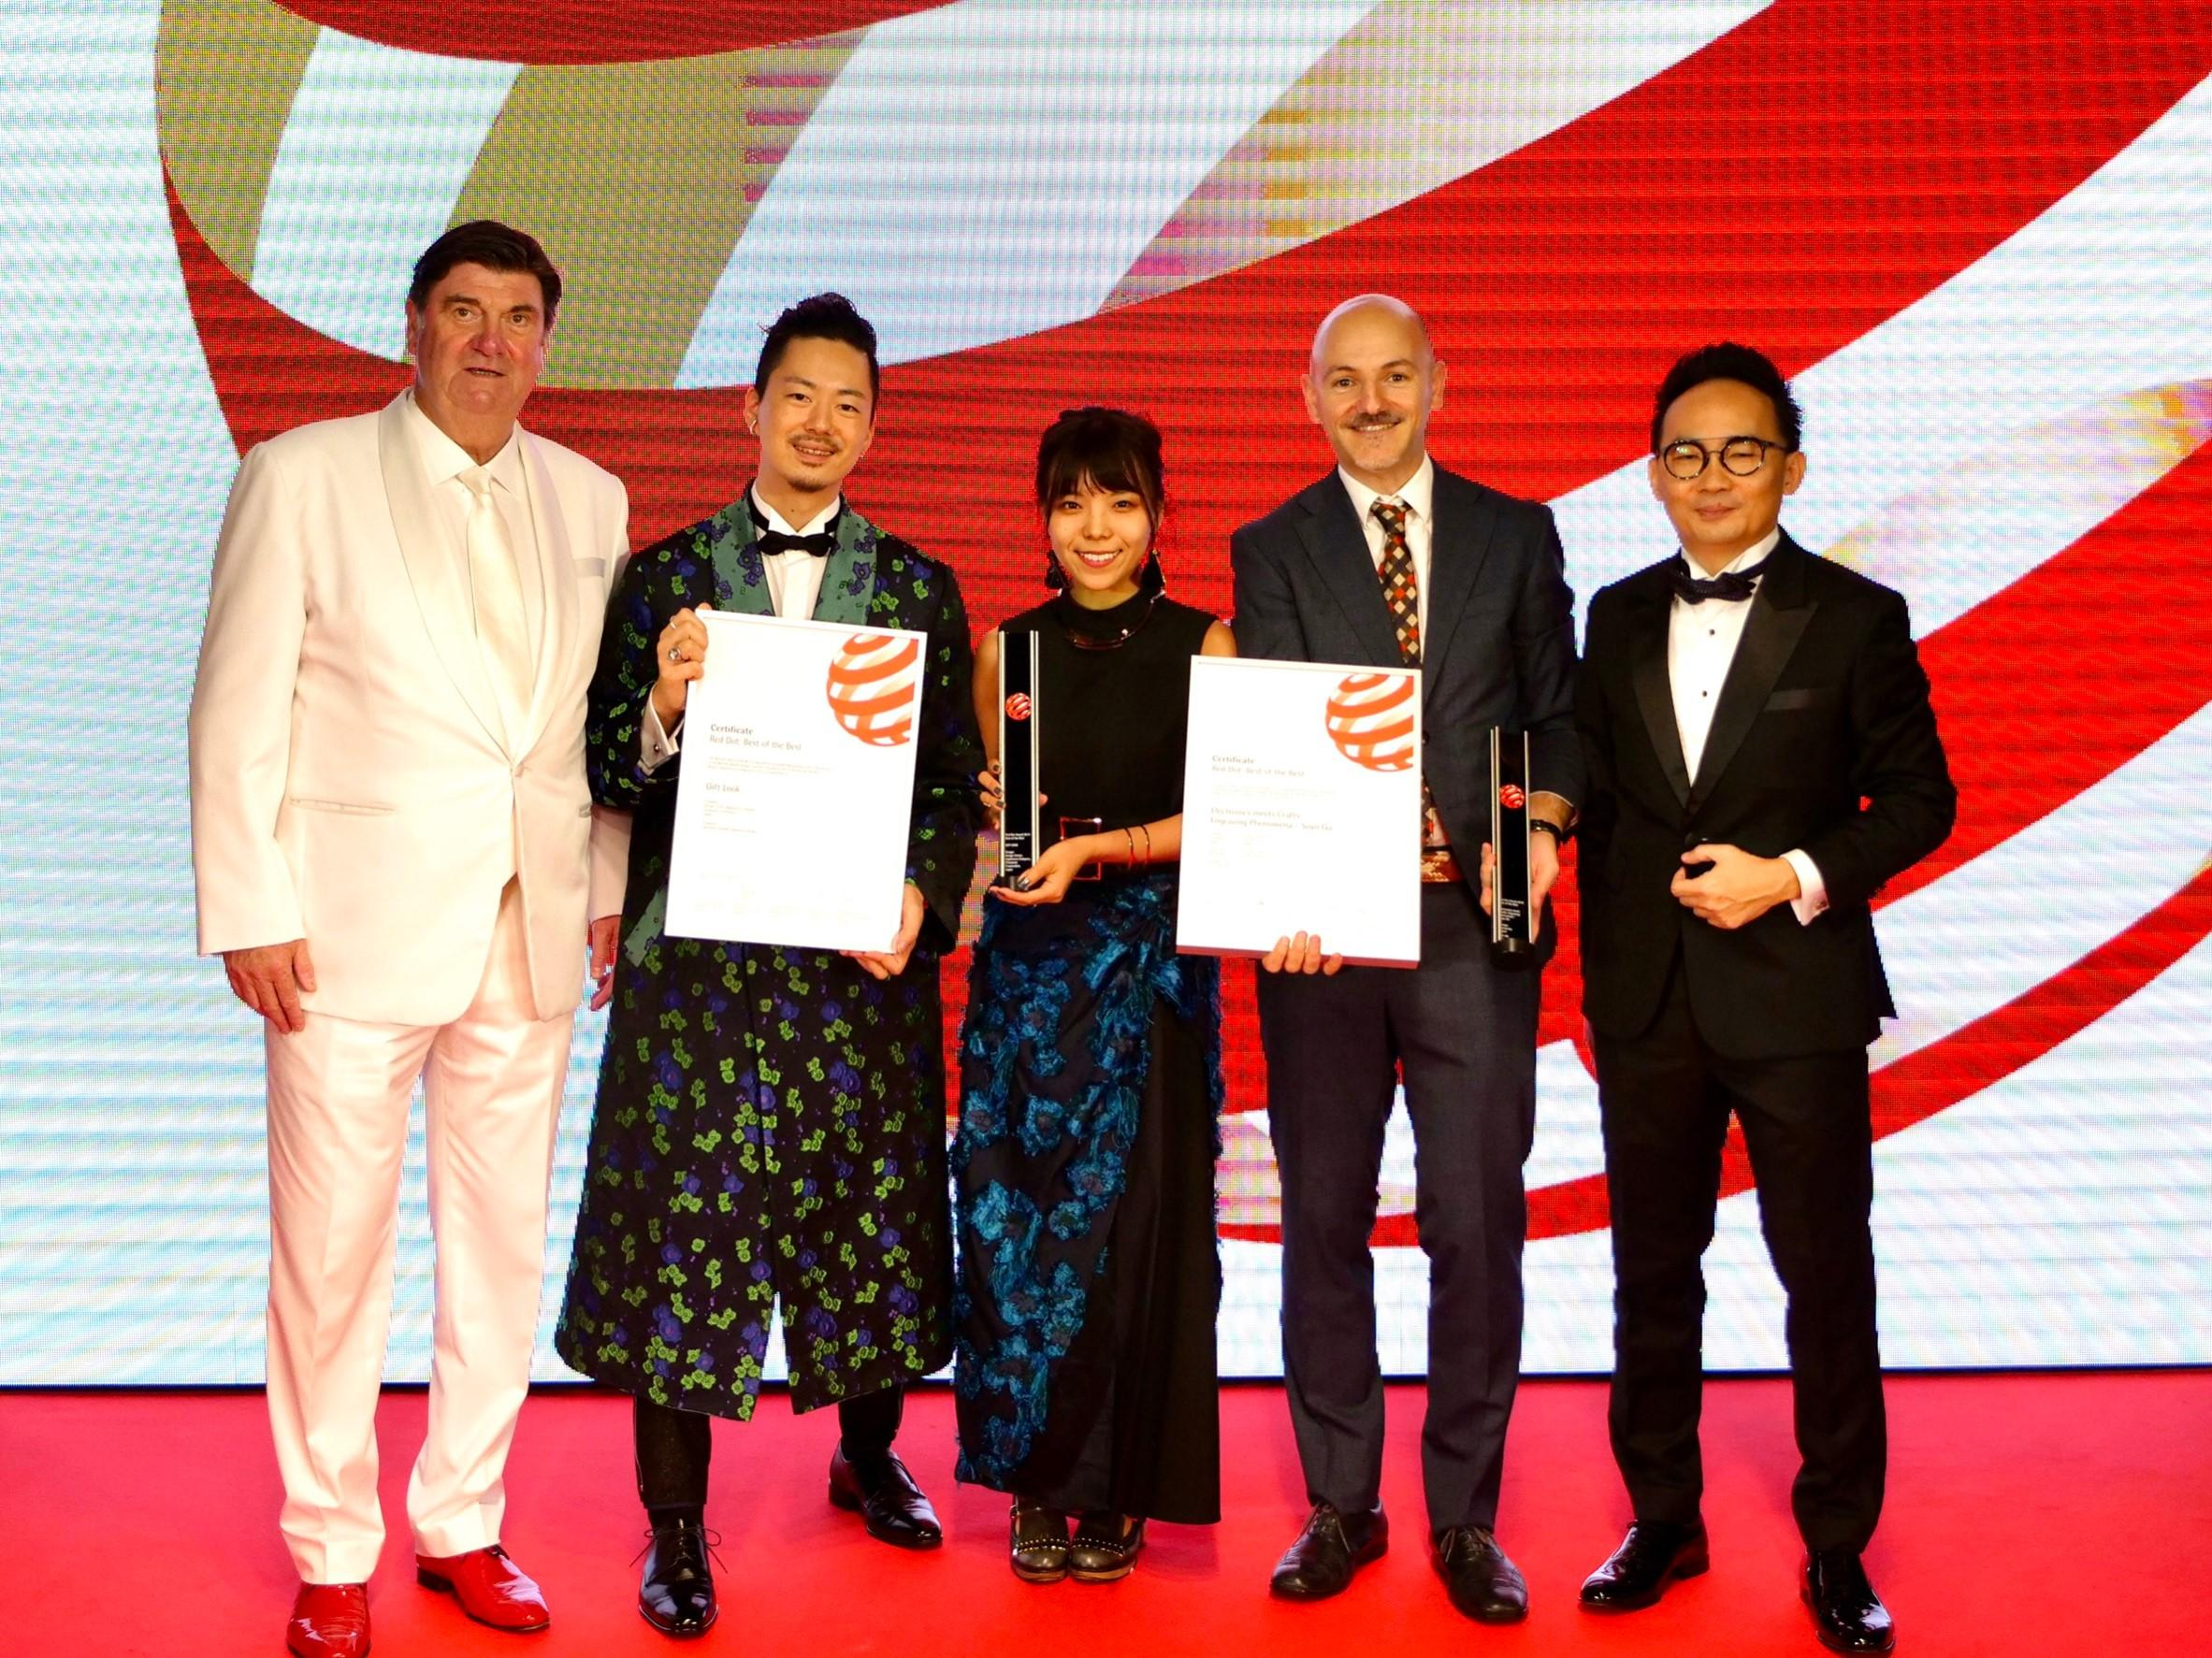 photo: Designers received the award at the Red Dot Design Award 2019 ceremony: Daisuke Takematsu (2nd from left), Haruka Matsunaga (3rd from left), Enrico Bergese (4th from left)